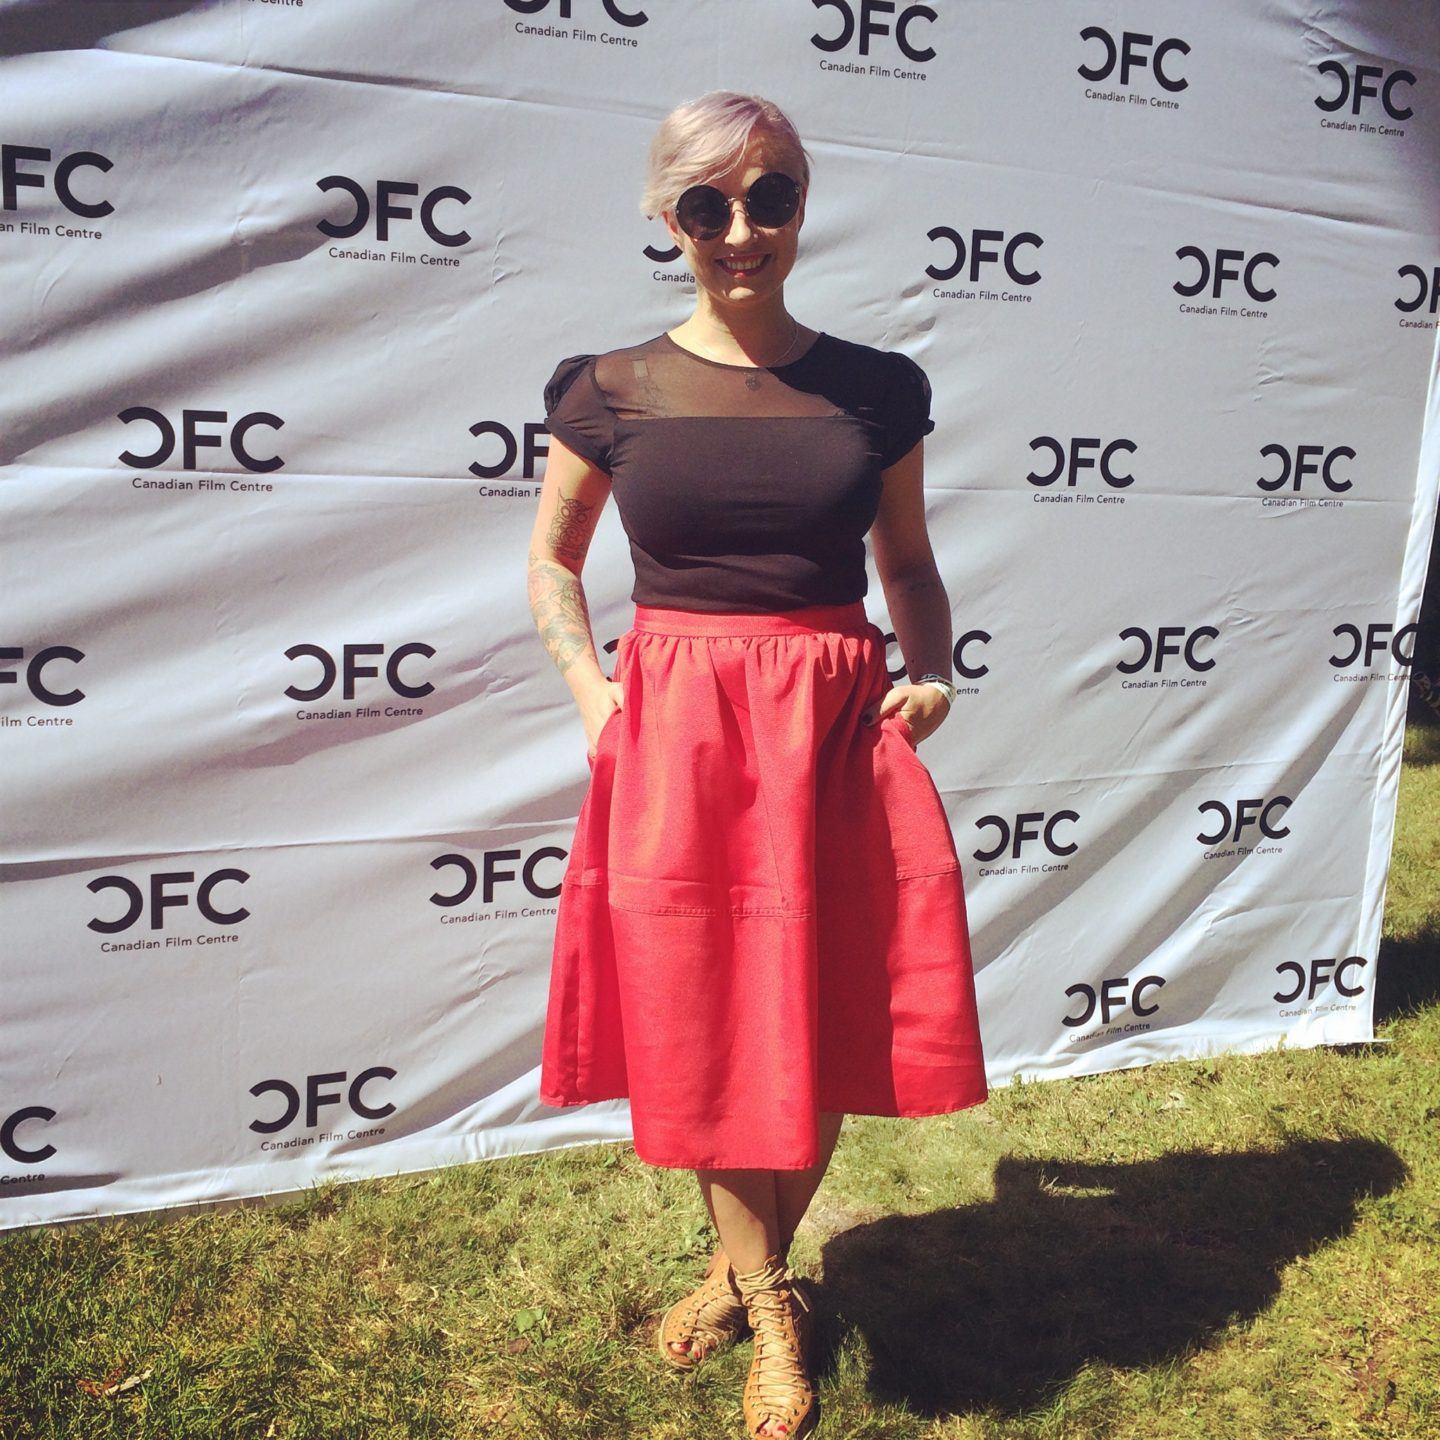 #TIFF14: CFC Annual BBQ Fundraiser for Canadian Film